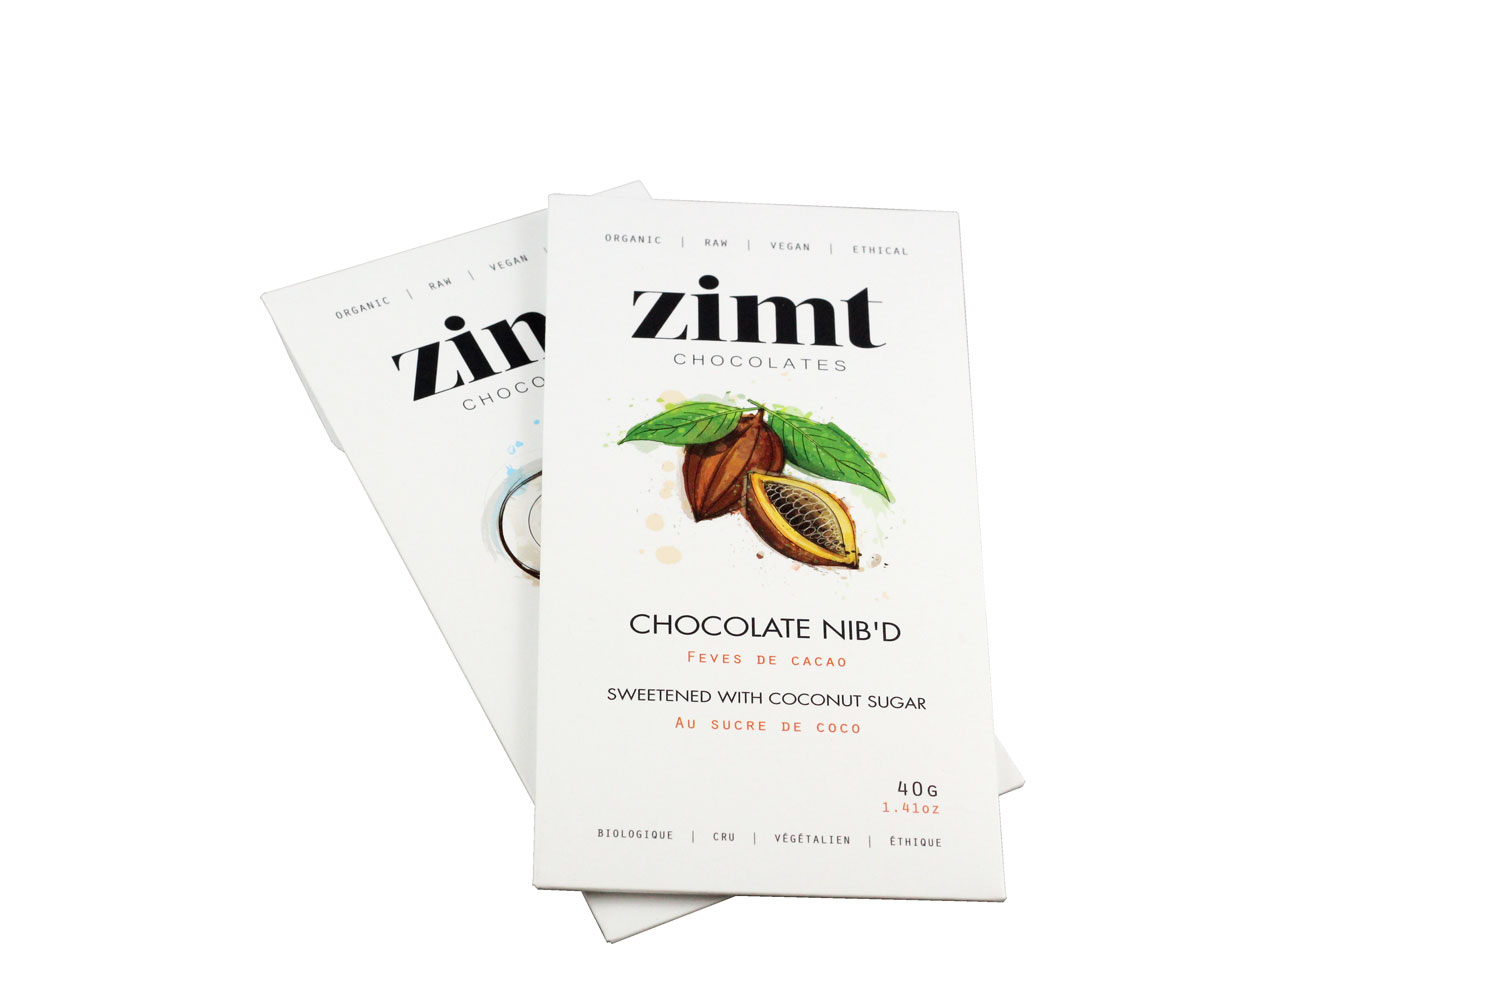 Zimt Chocolates Chocolate Bar Packaging